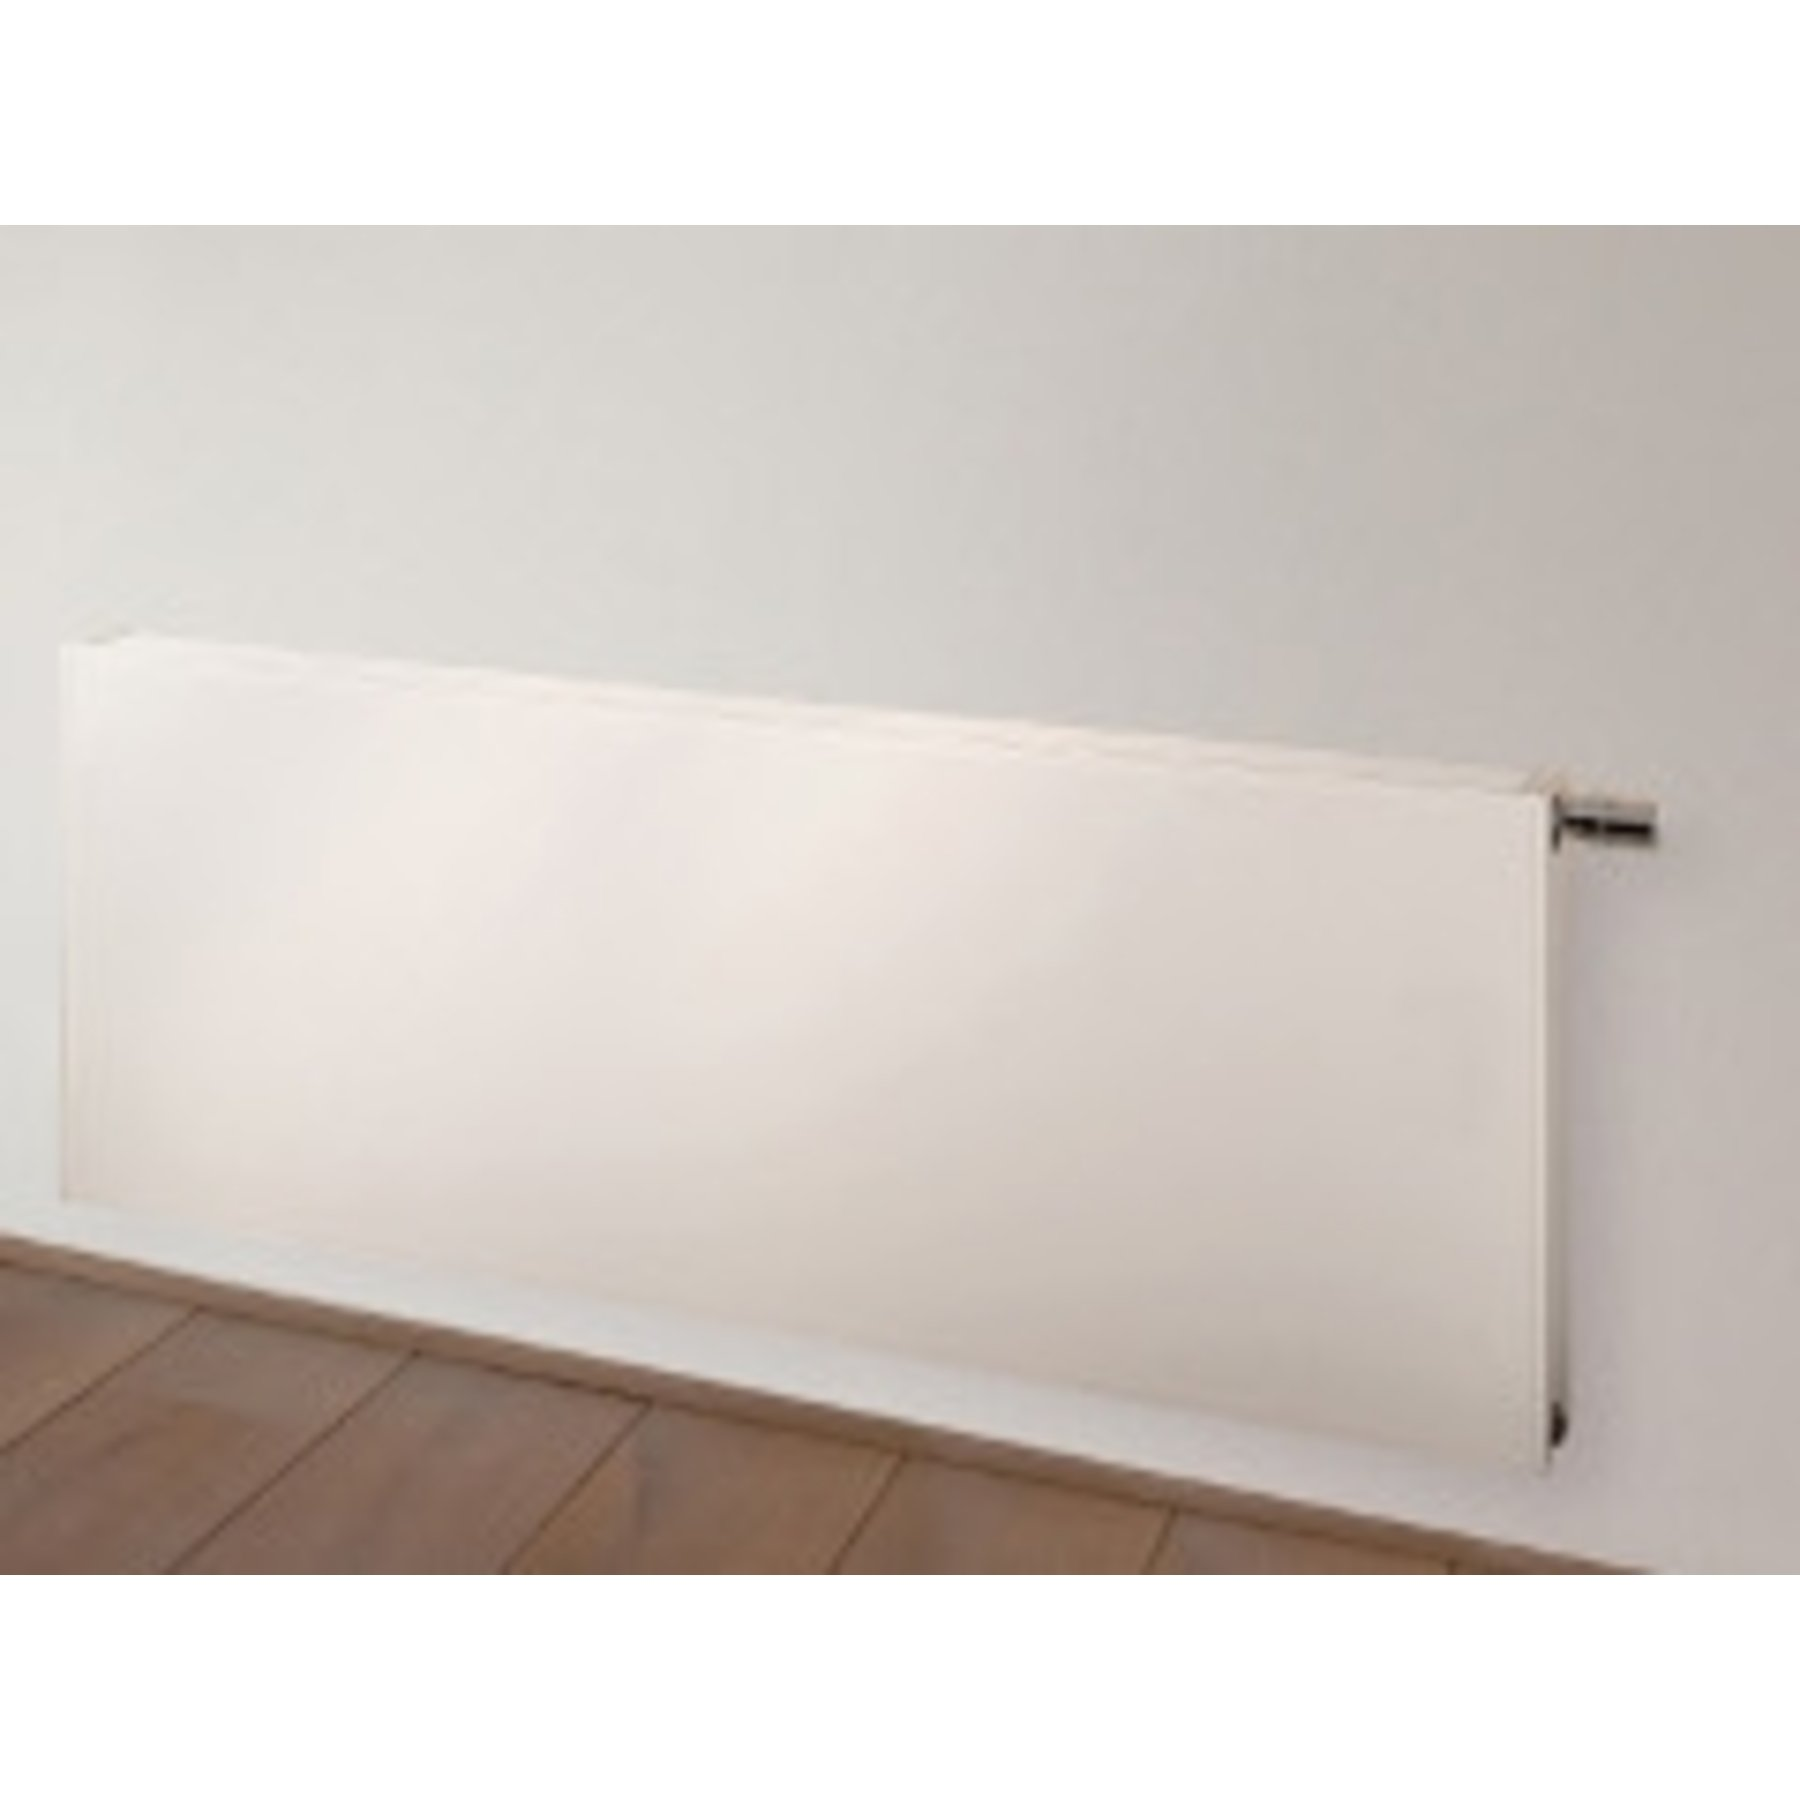 Vasco Flatline Paneelradiator type 21 400x2400mm 2194 watt vlak wit structuur (S600)